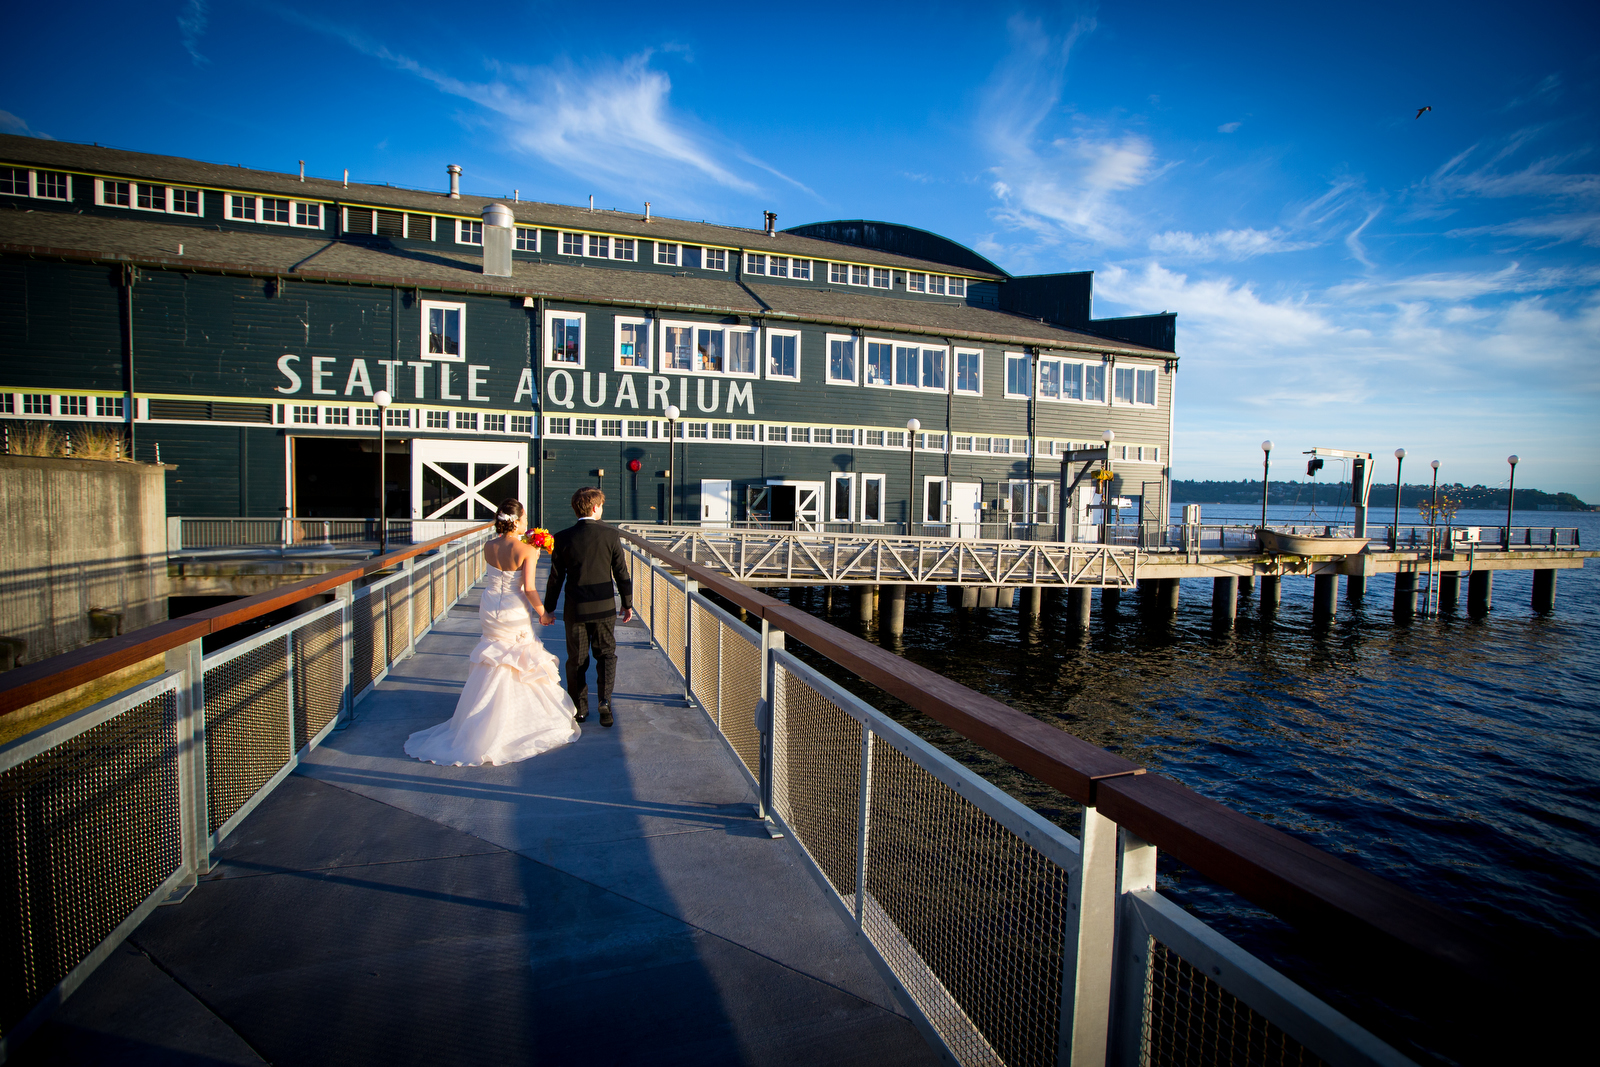 The bride and groom go for a stroll following their wedding ceremony at the Seattle Aquarium. (Wedding Photography by Scott Eklund - Red Box Pictures)